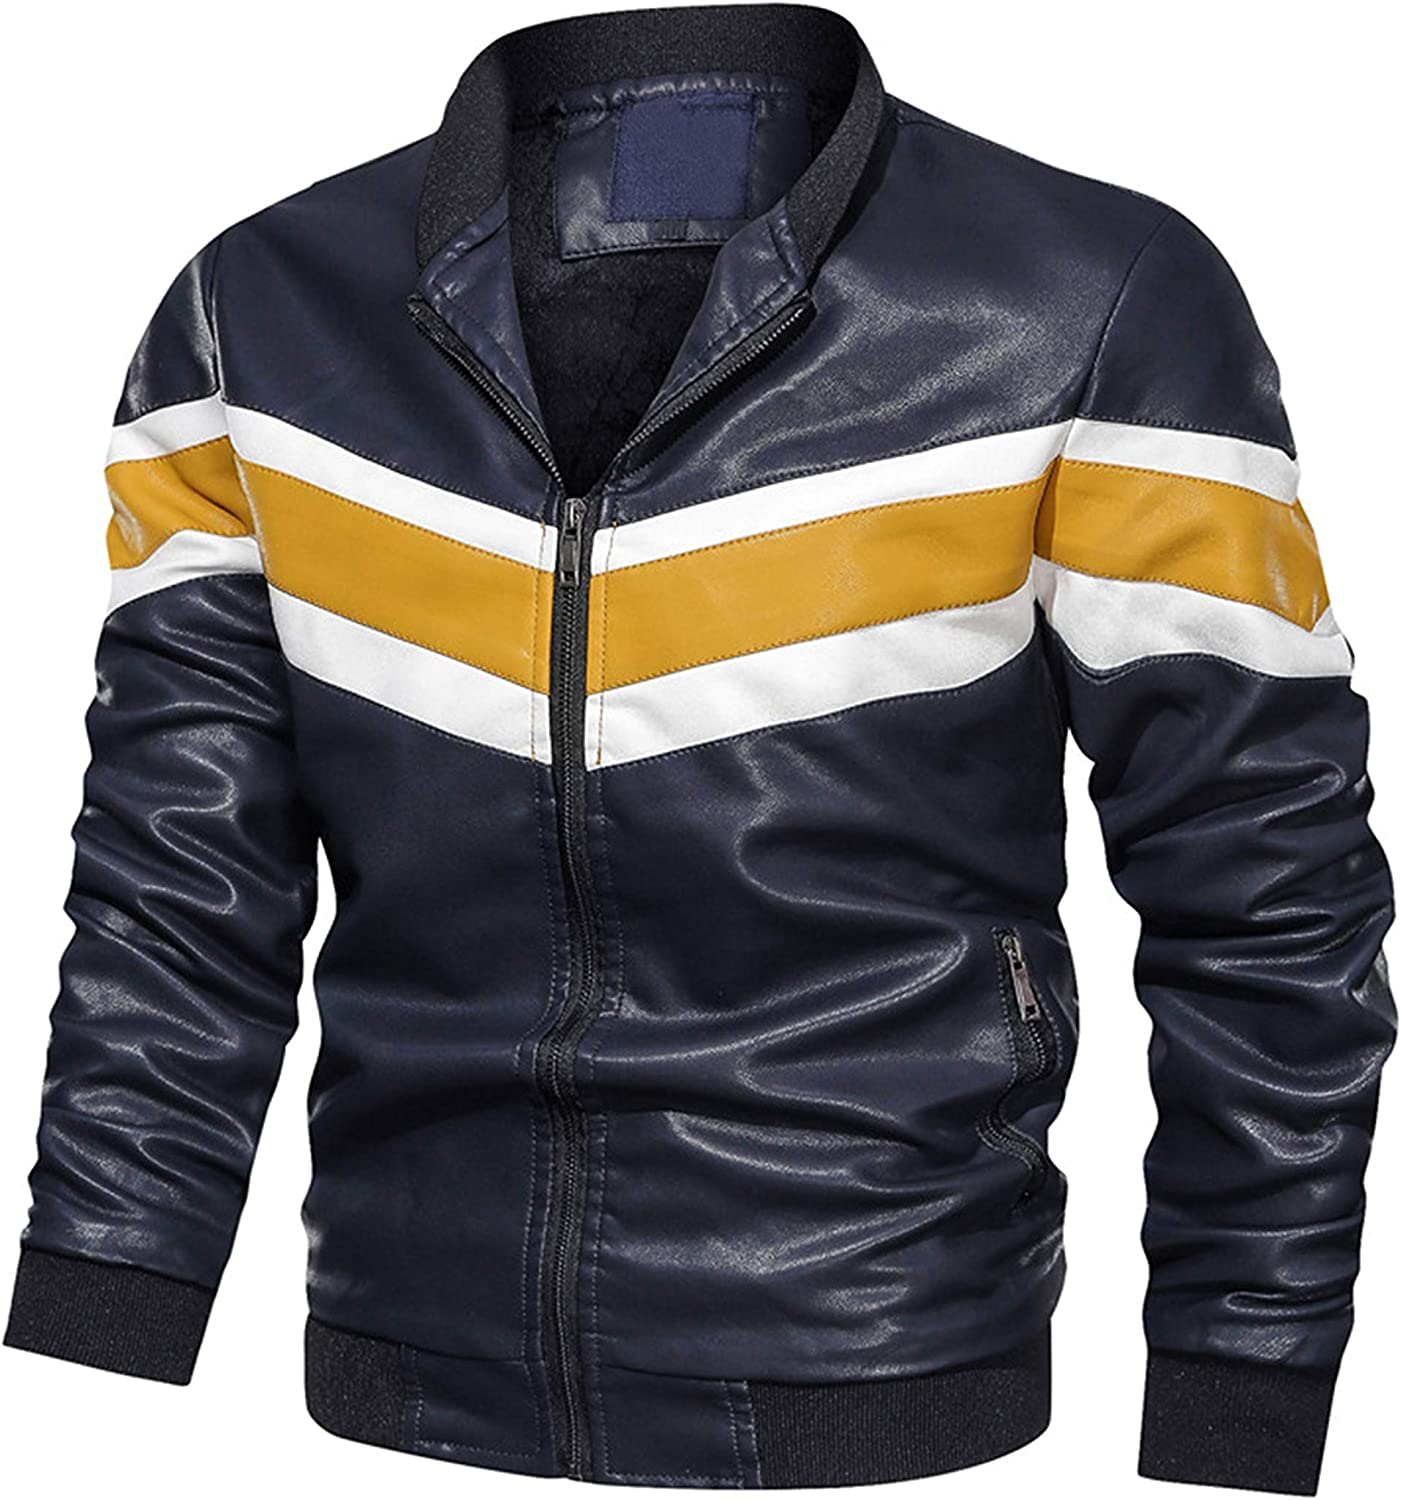 Tanming Men's Contrast Color Faux Leather Motorbike Bomber Jacket